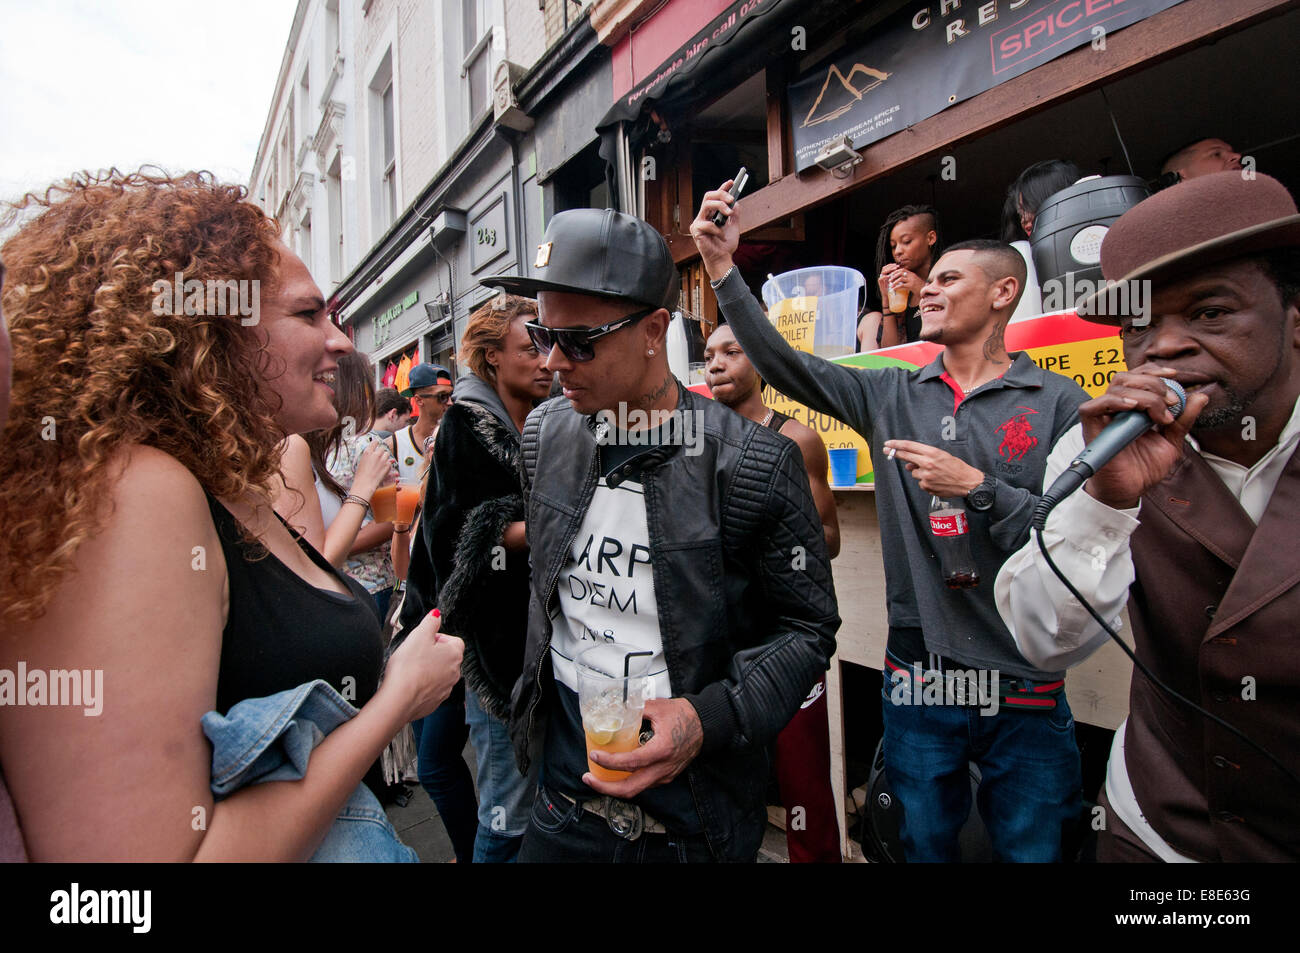 Annual Notting Hill Carnival in London 2014 - Stock Image